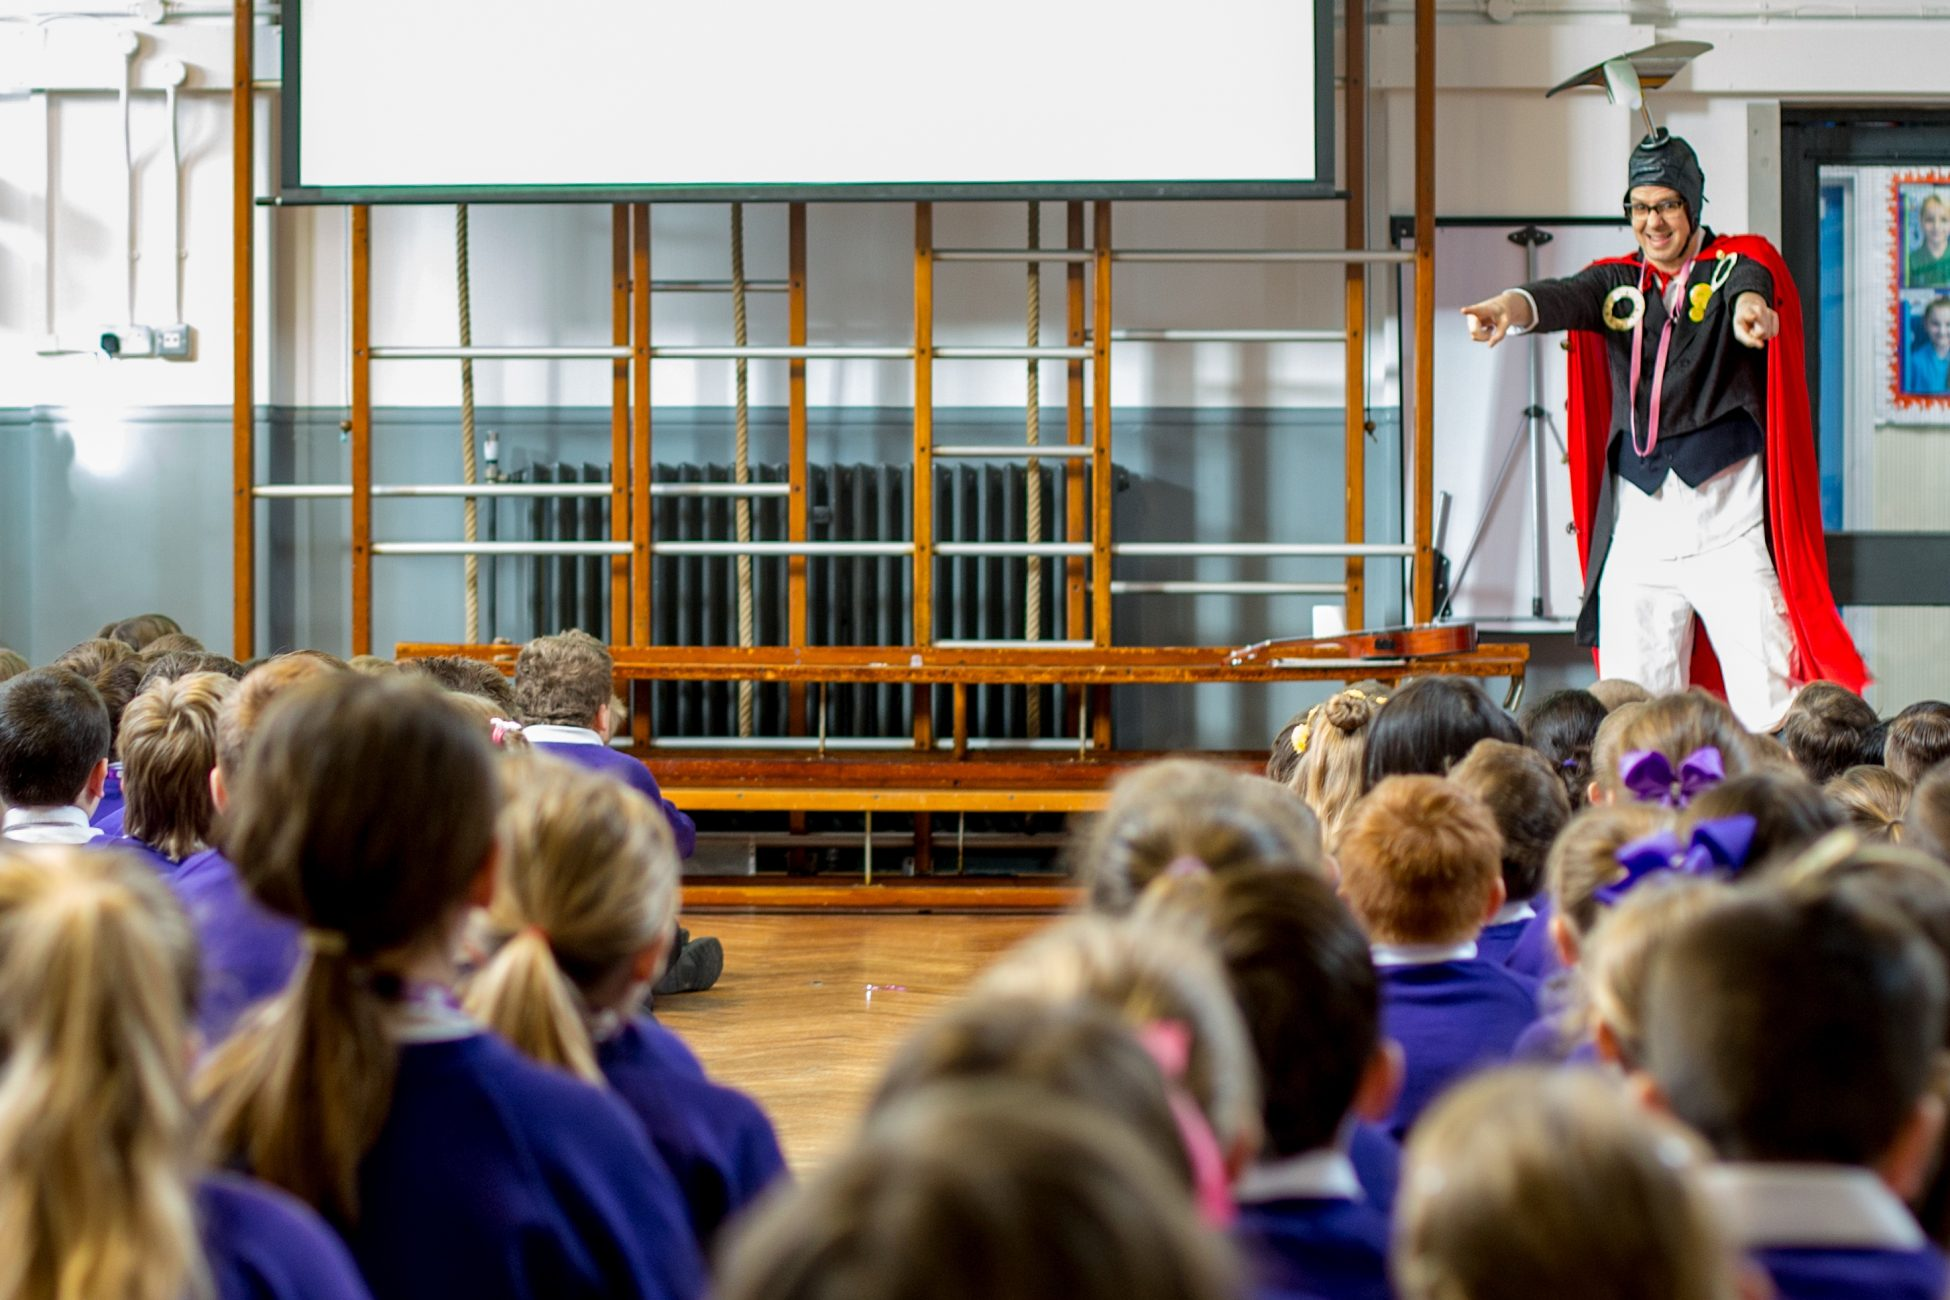 Photo of steampunk bob standing in front of a large group of school children sitting on the floor of a school hall. Bob is smiling and pointing at the children with both hands.